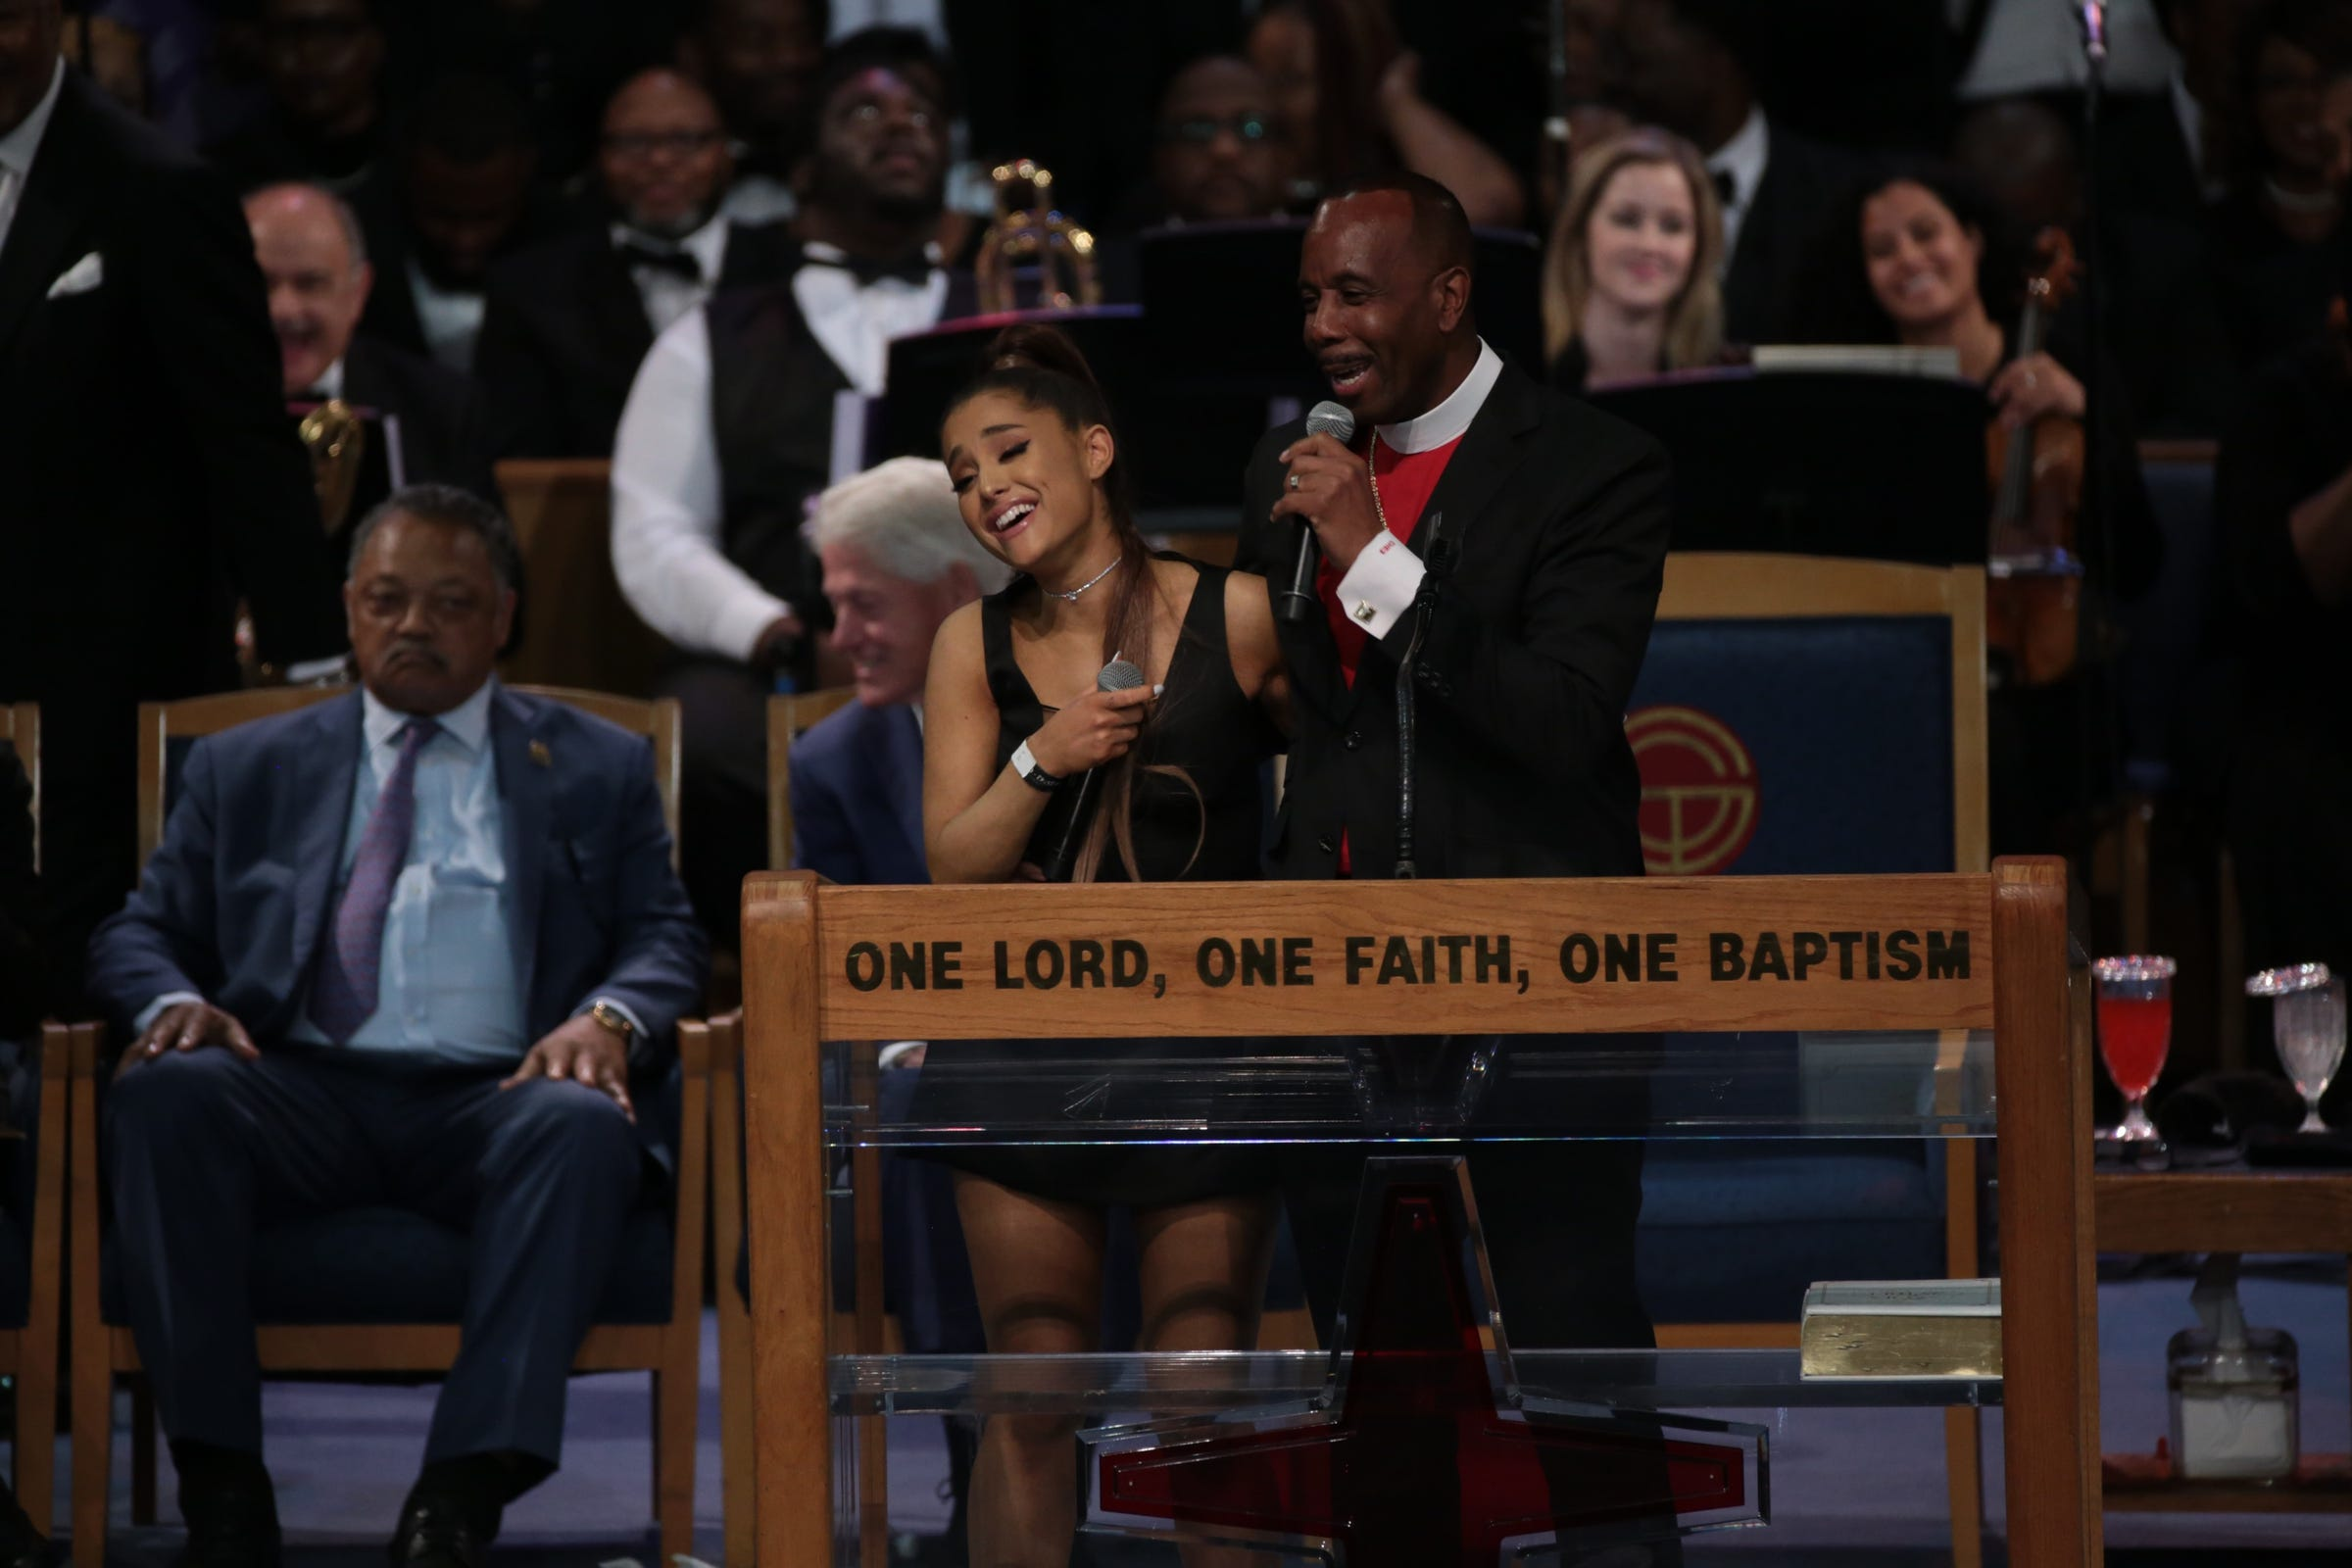 Aretha Franklin funeral bishop apologizes to Ariane Grande for name joke, inappropriate touching